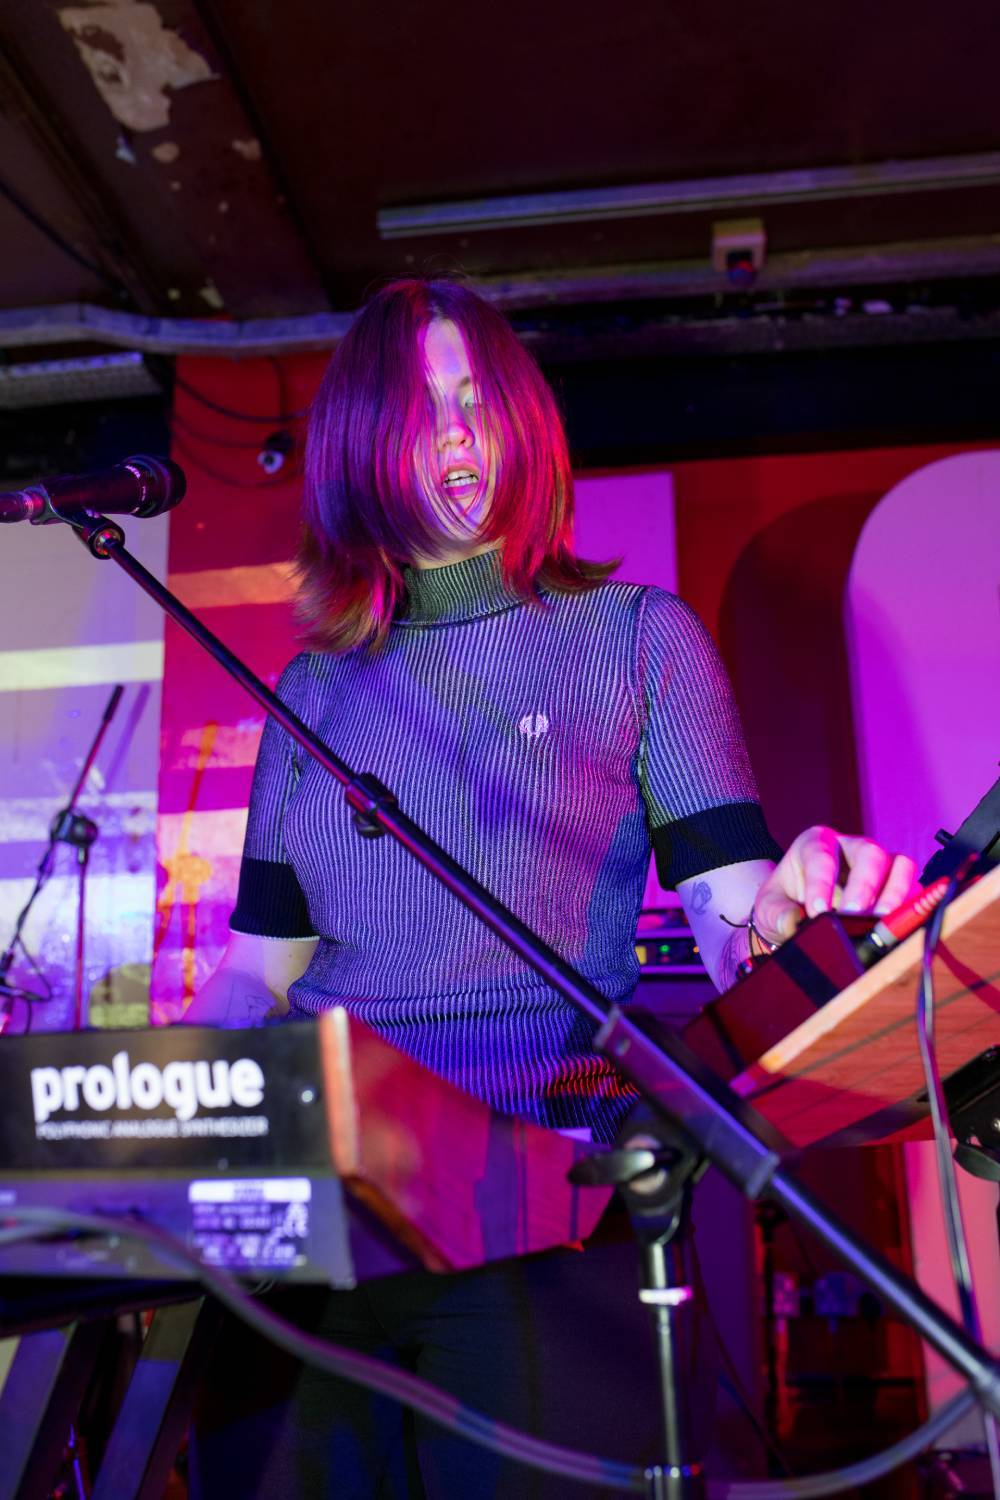 Get a glimpse of Fred Perry's recent All Our Tomorrows live shows